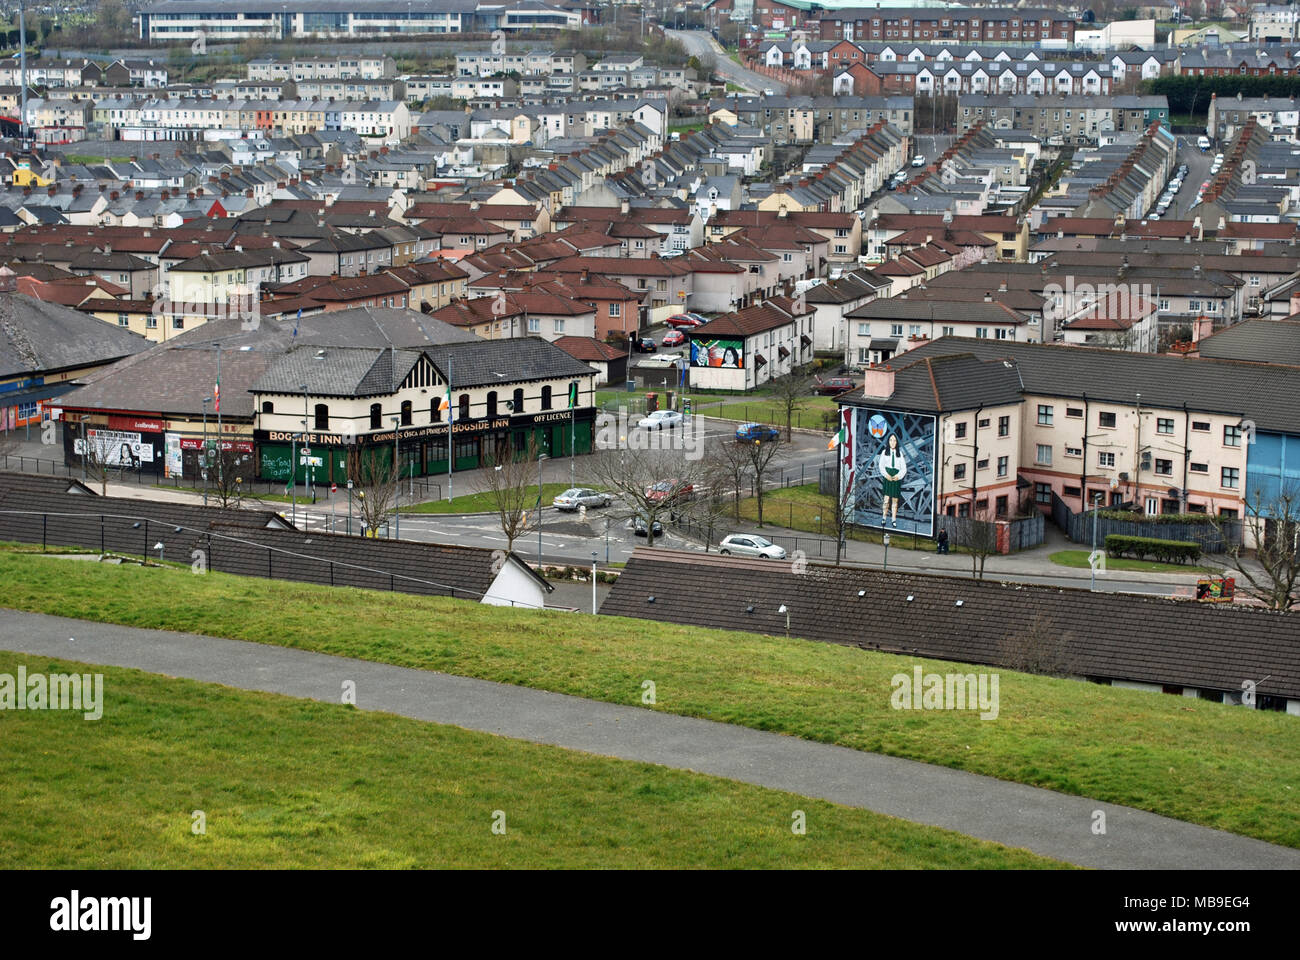 View of The Bogside from Derry City Walls. The mainly Catholic/Republican area of the city, it was a focal point of many events during 'The Troubles'. - Stock Image